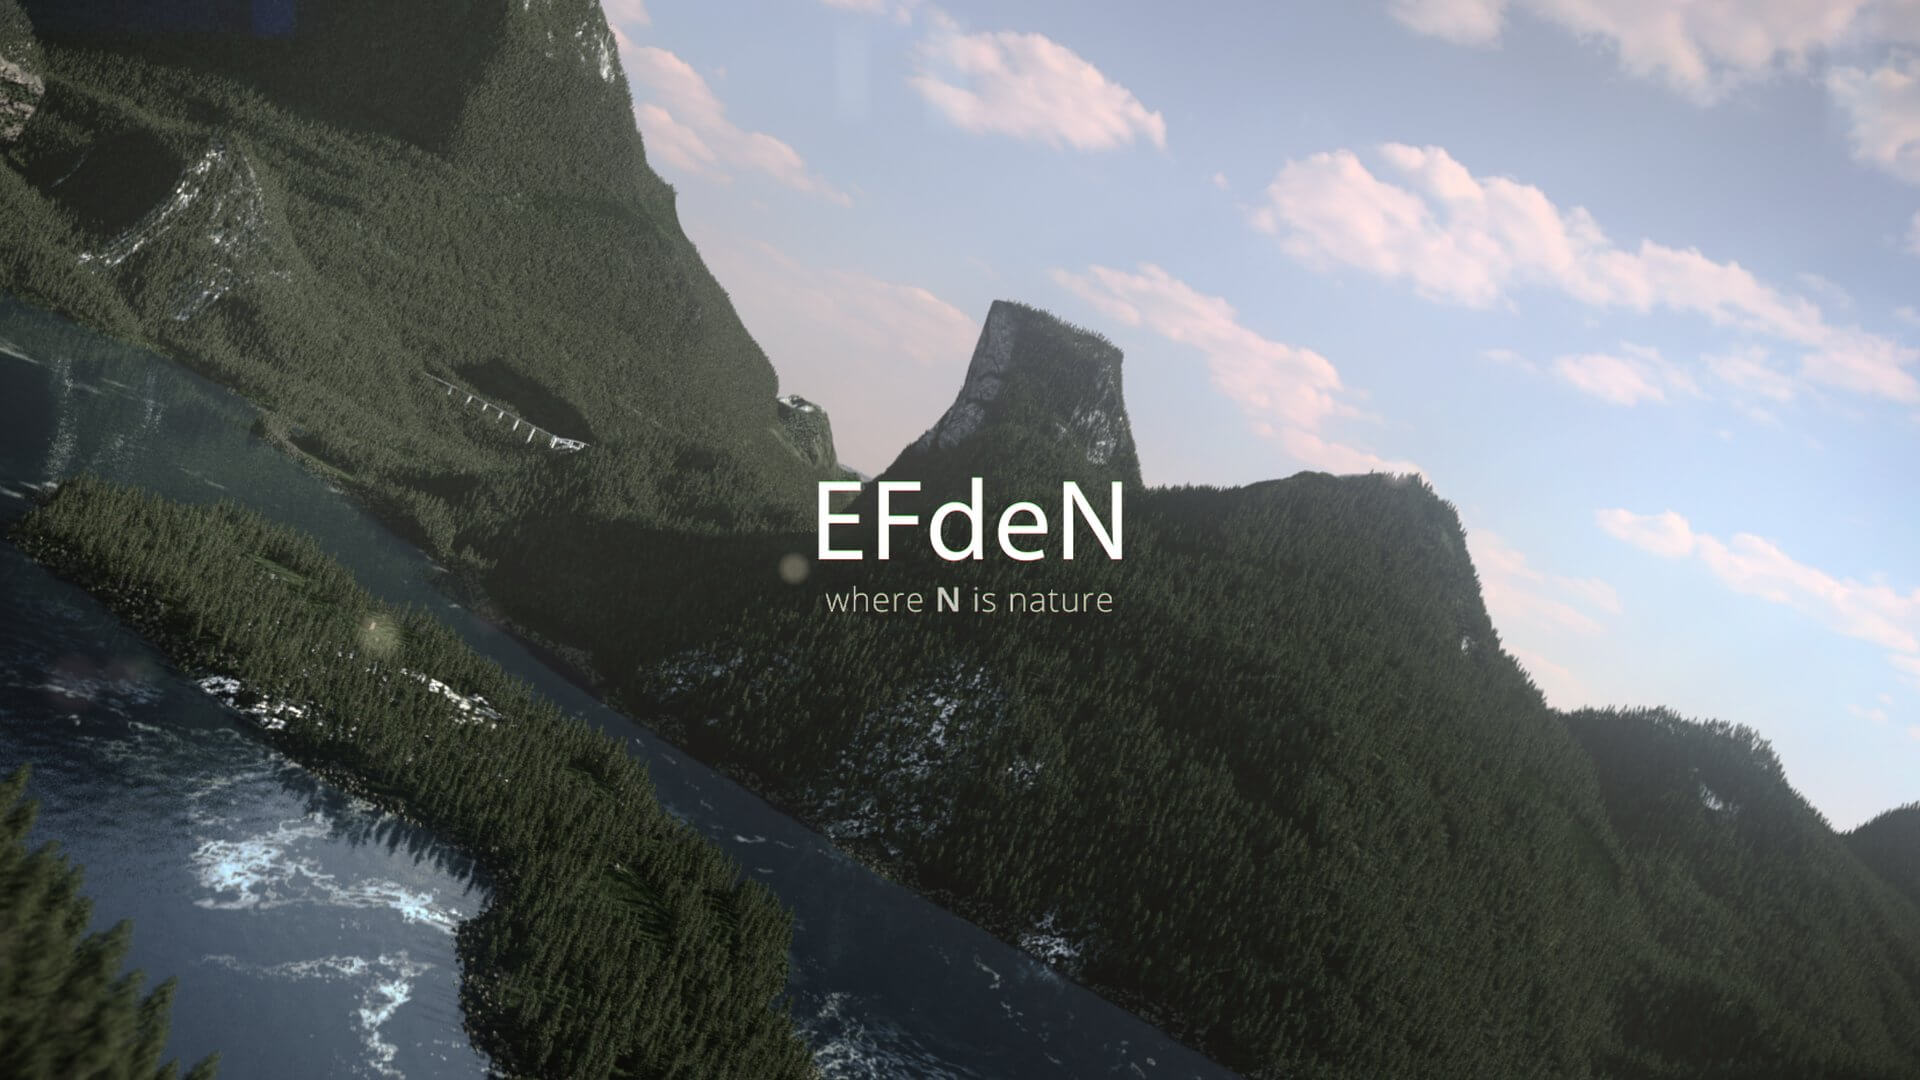 architectural-film-architectural-video-efden-where-n-is-nature